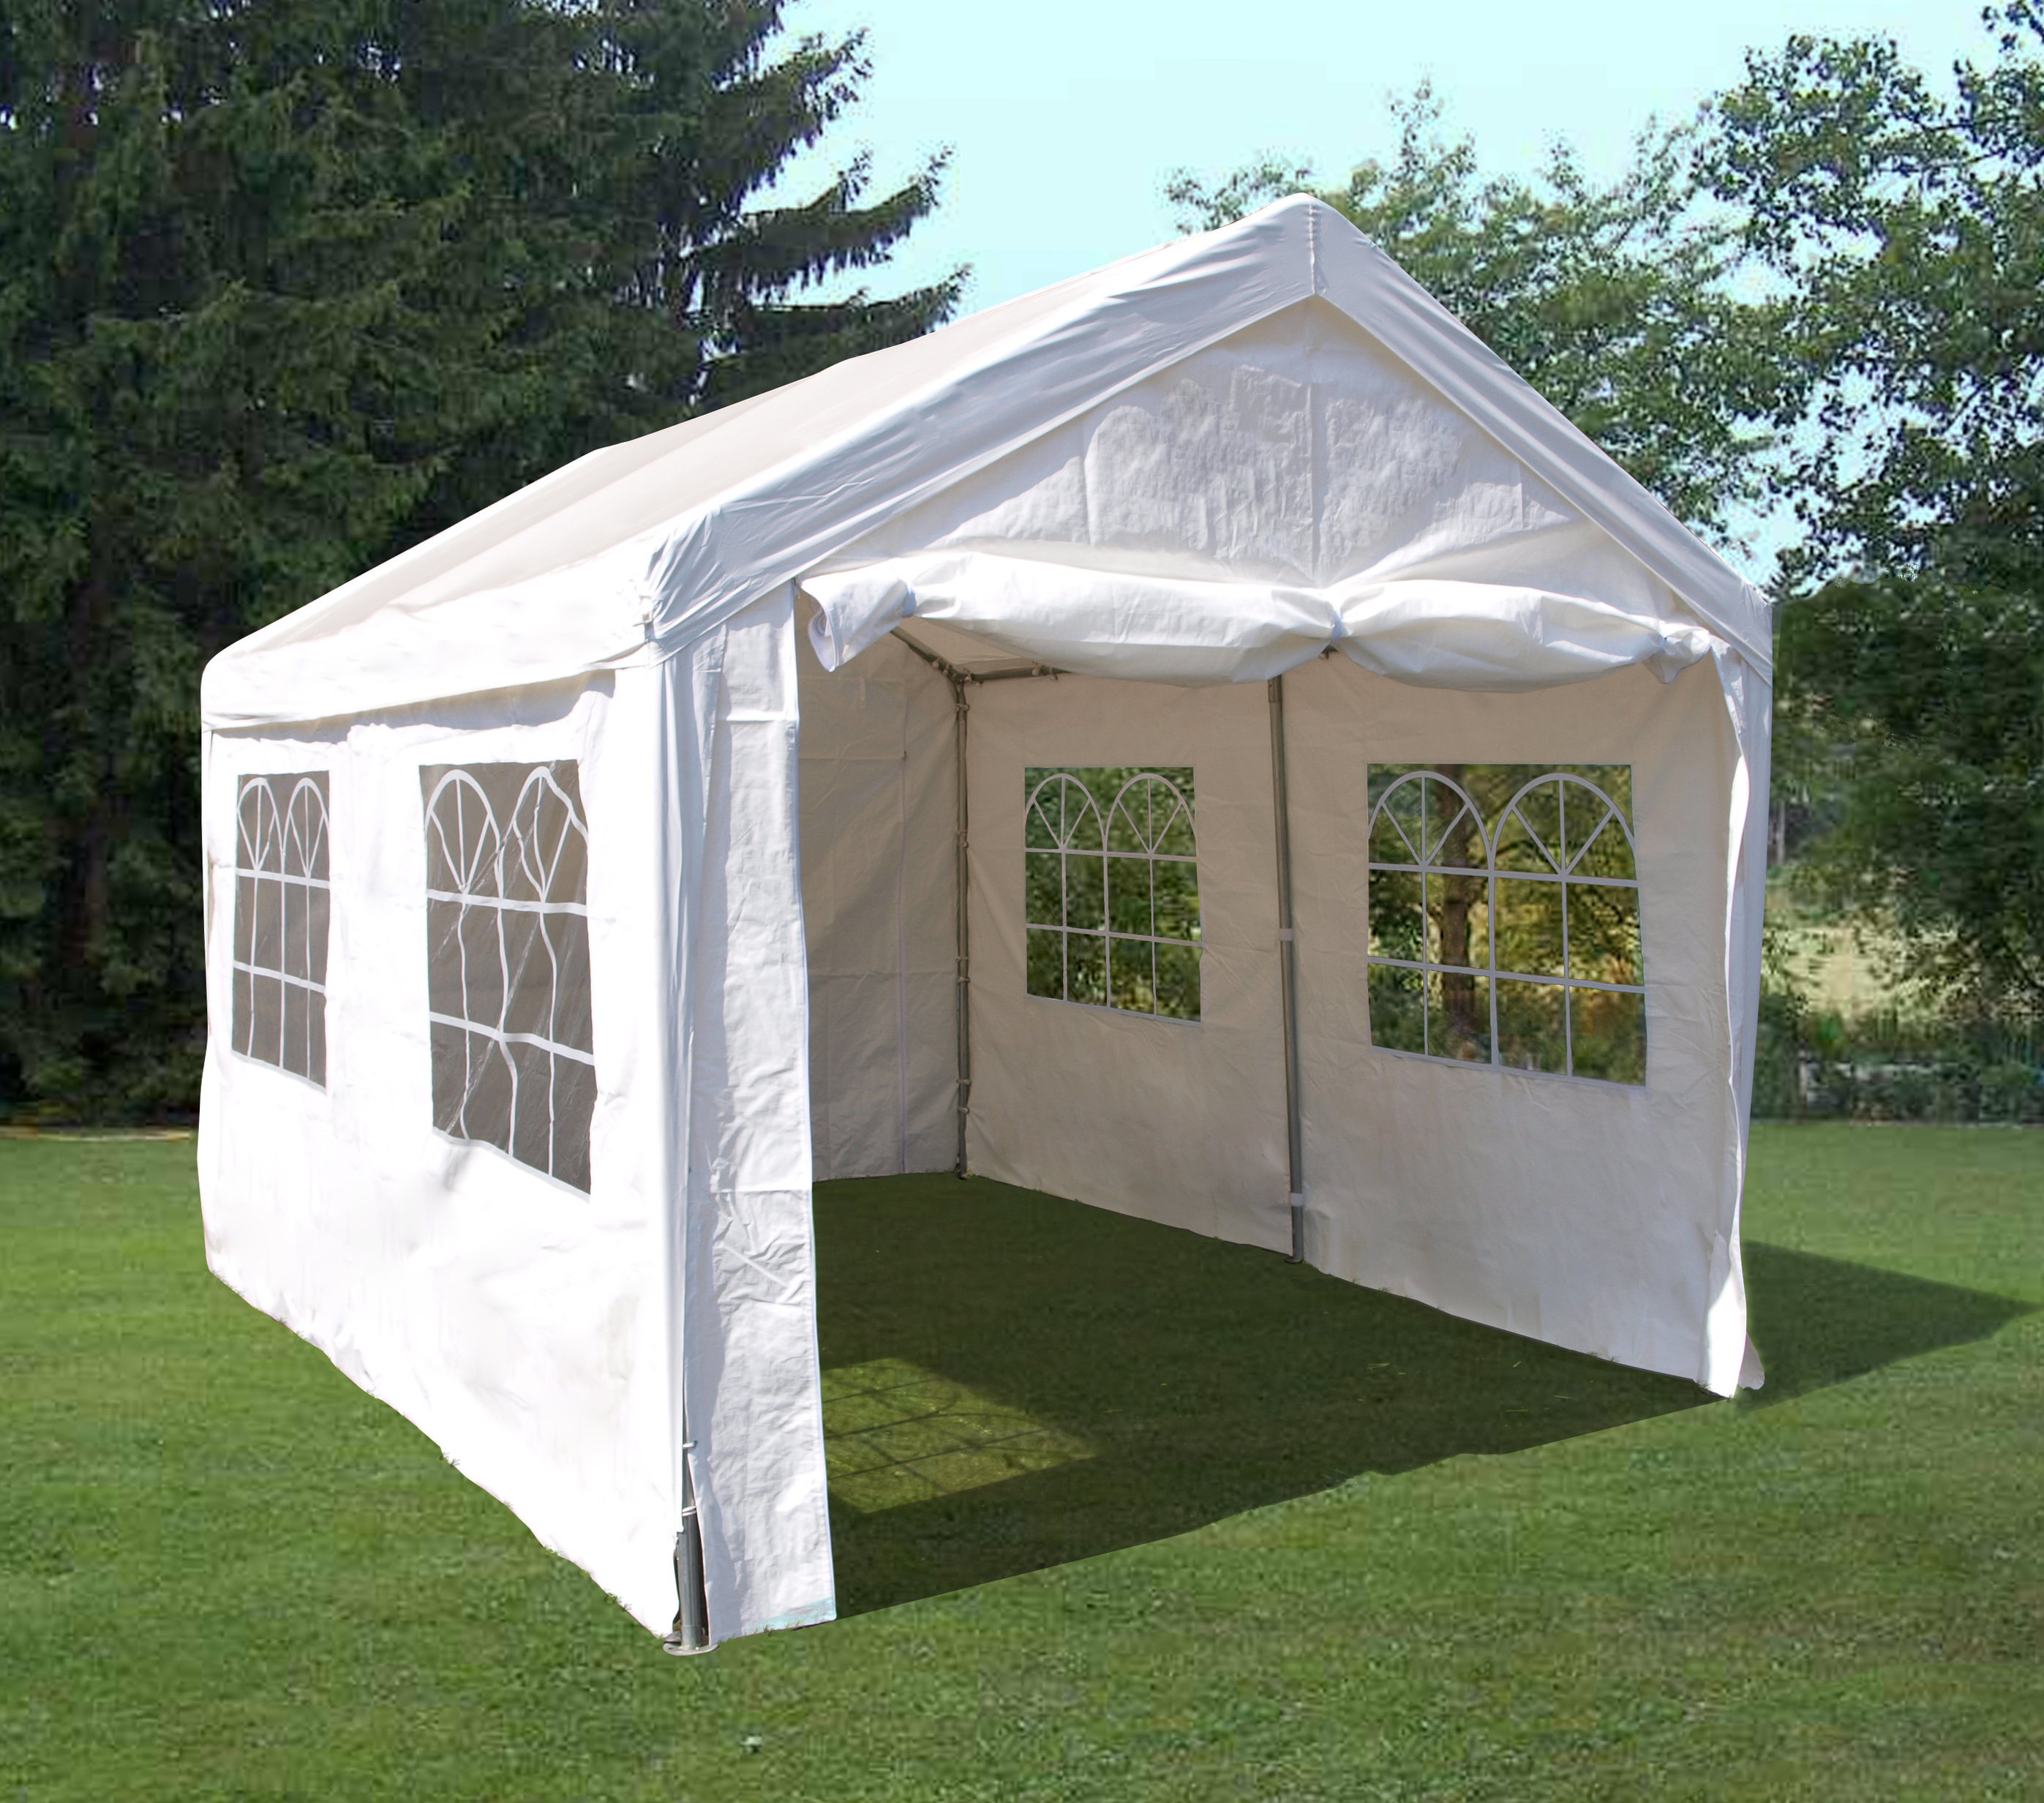 profizelt pavillon partyzelt festzelt 3x4 meter pvc wei. Black Bedroom Furniture Sets. Home Design Ideas